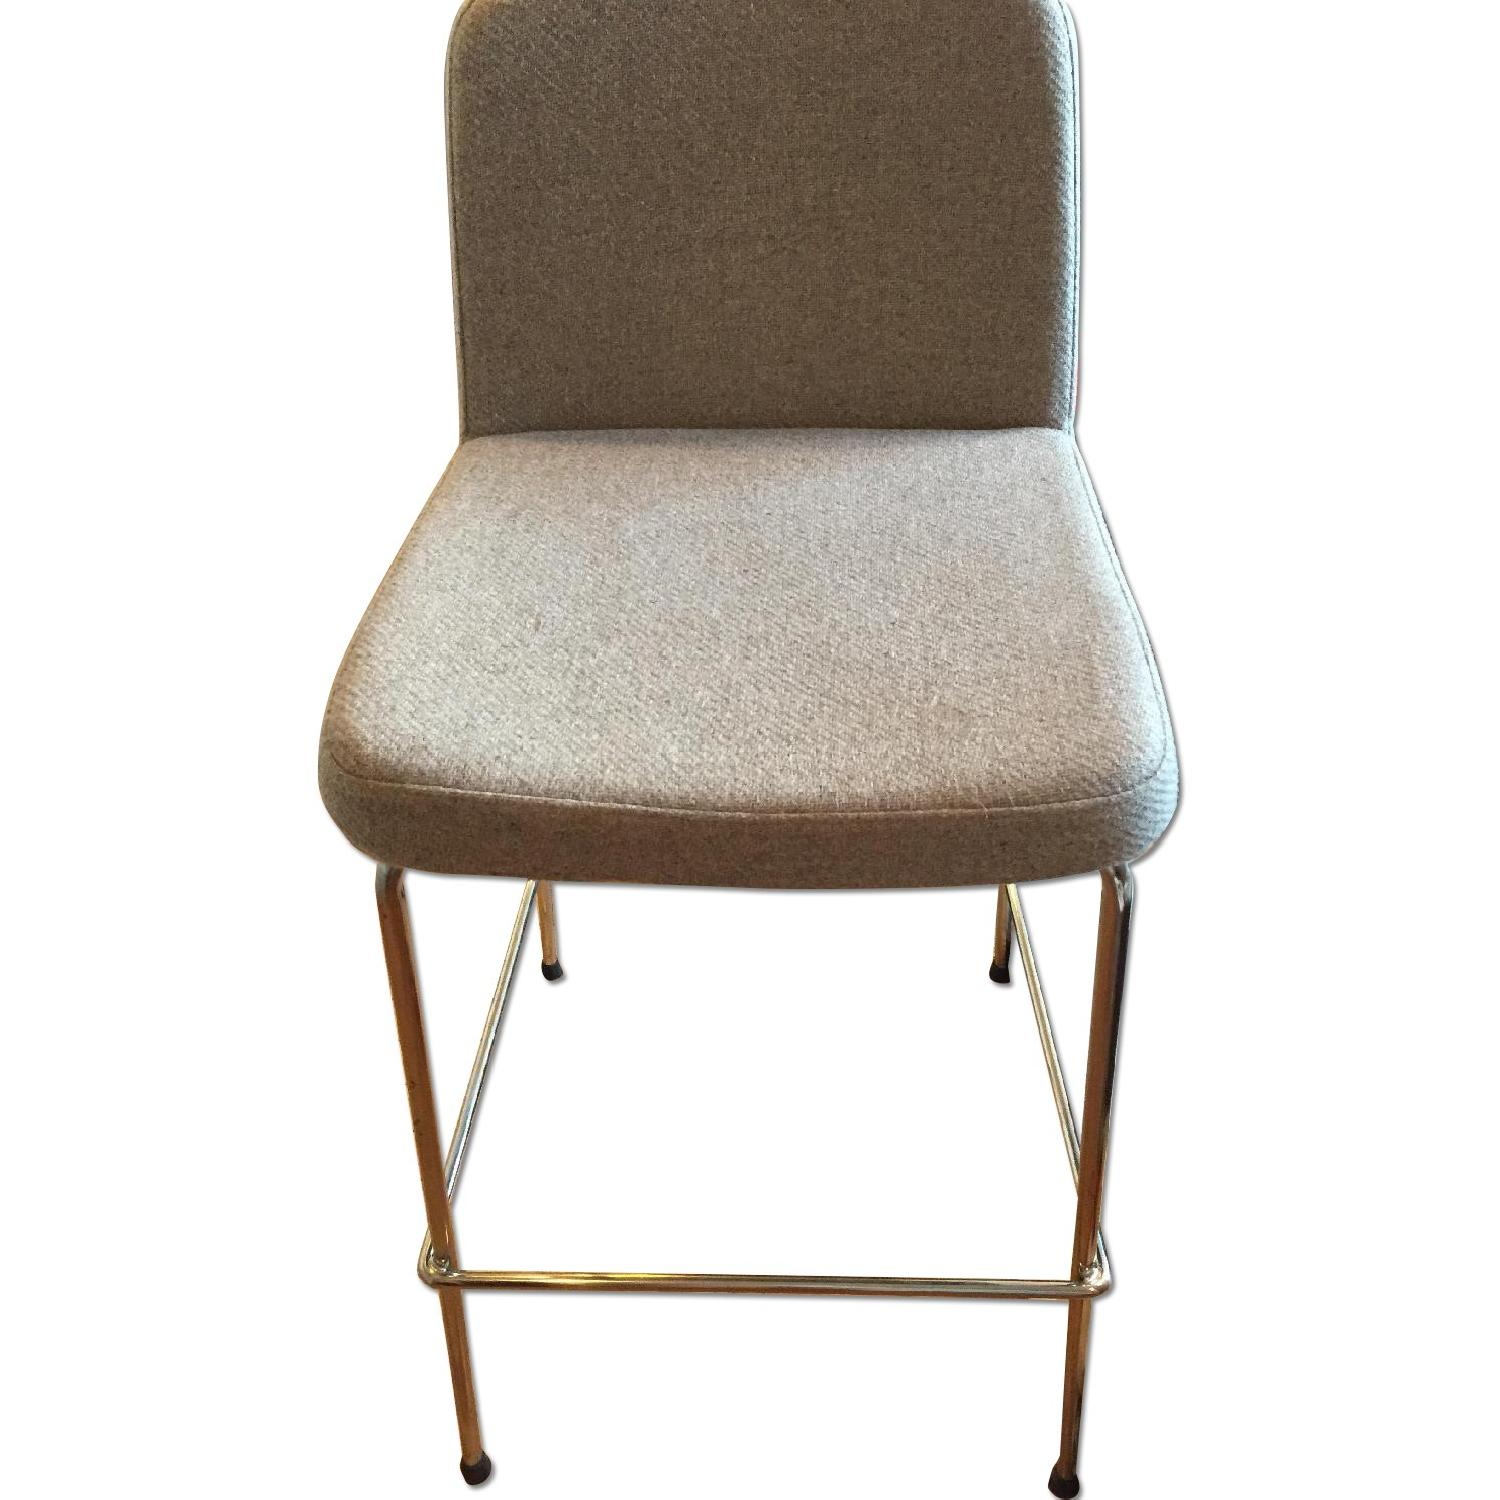 CB2 High Top Chairs - image-0